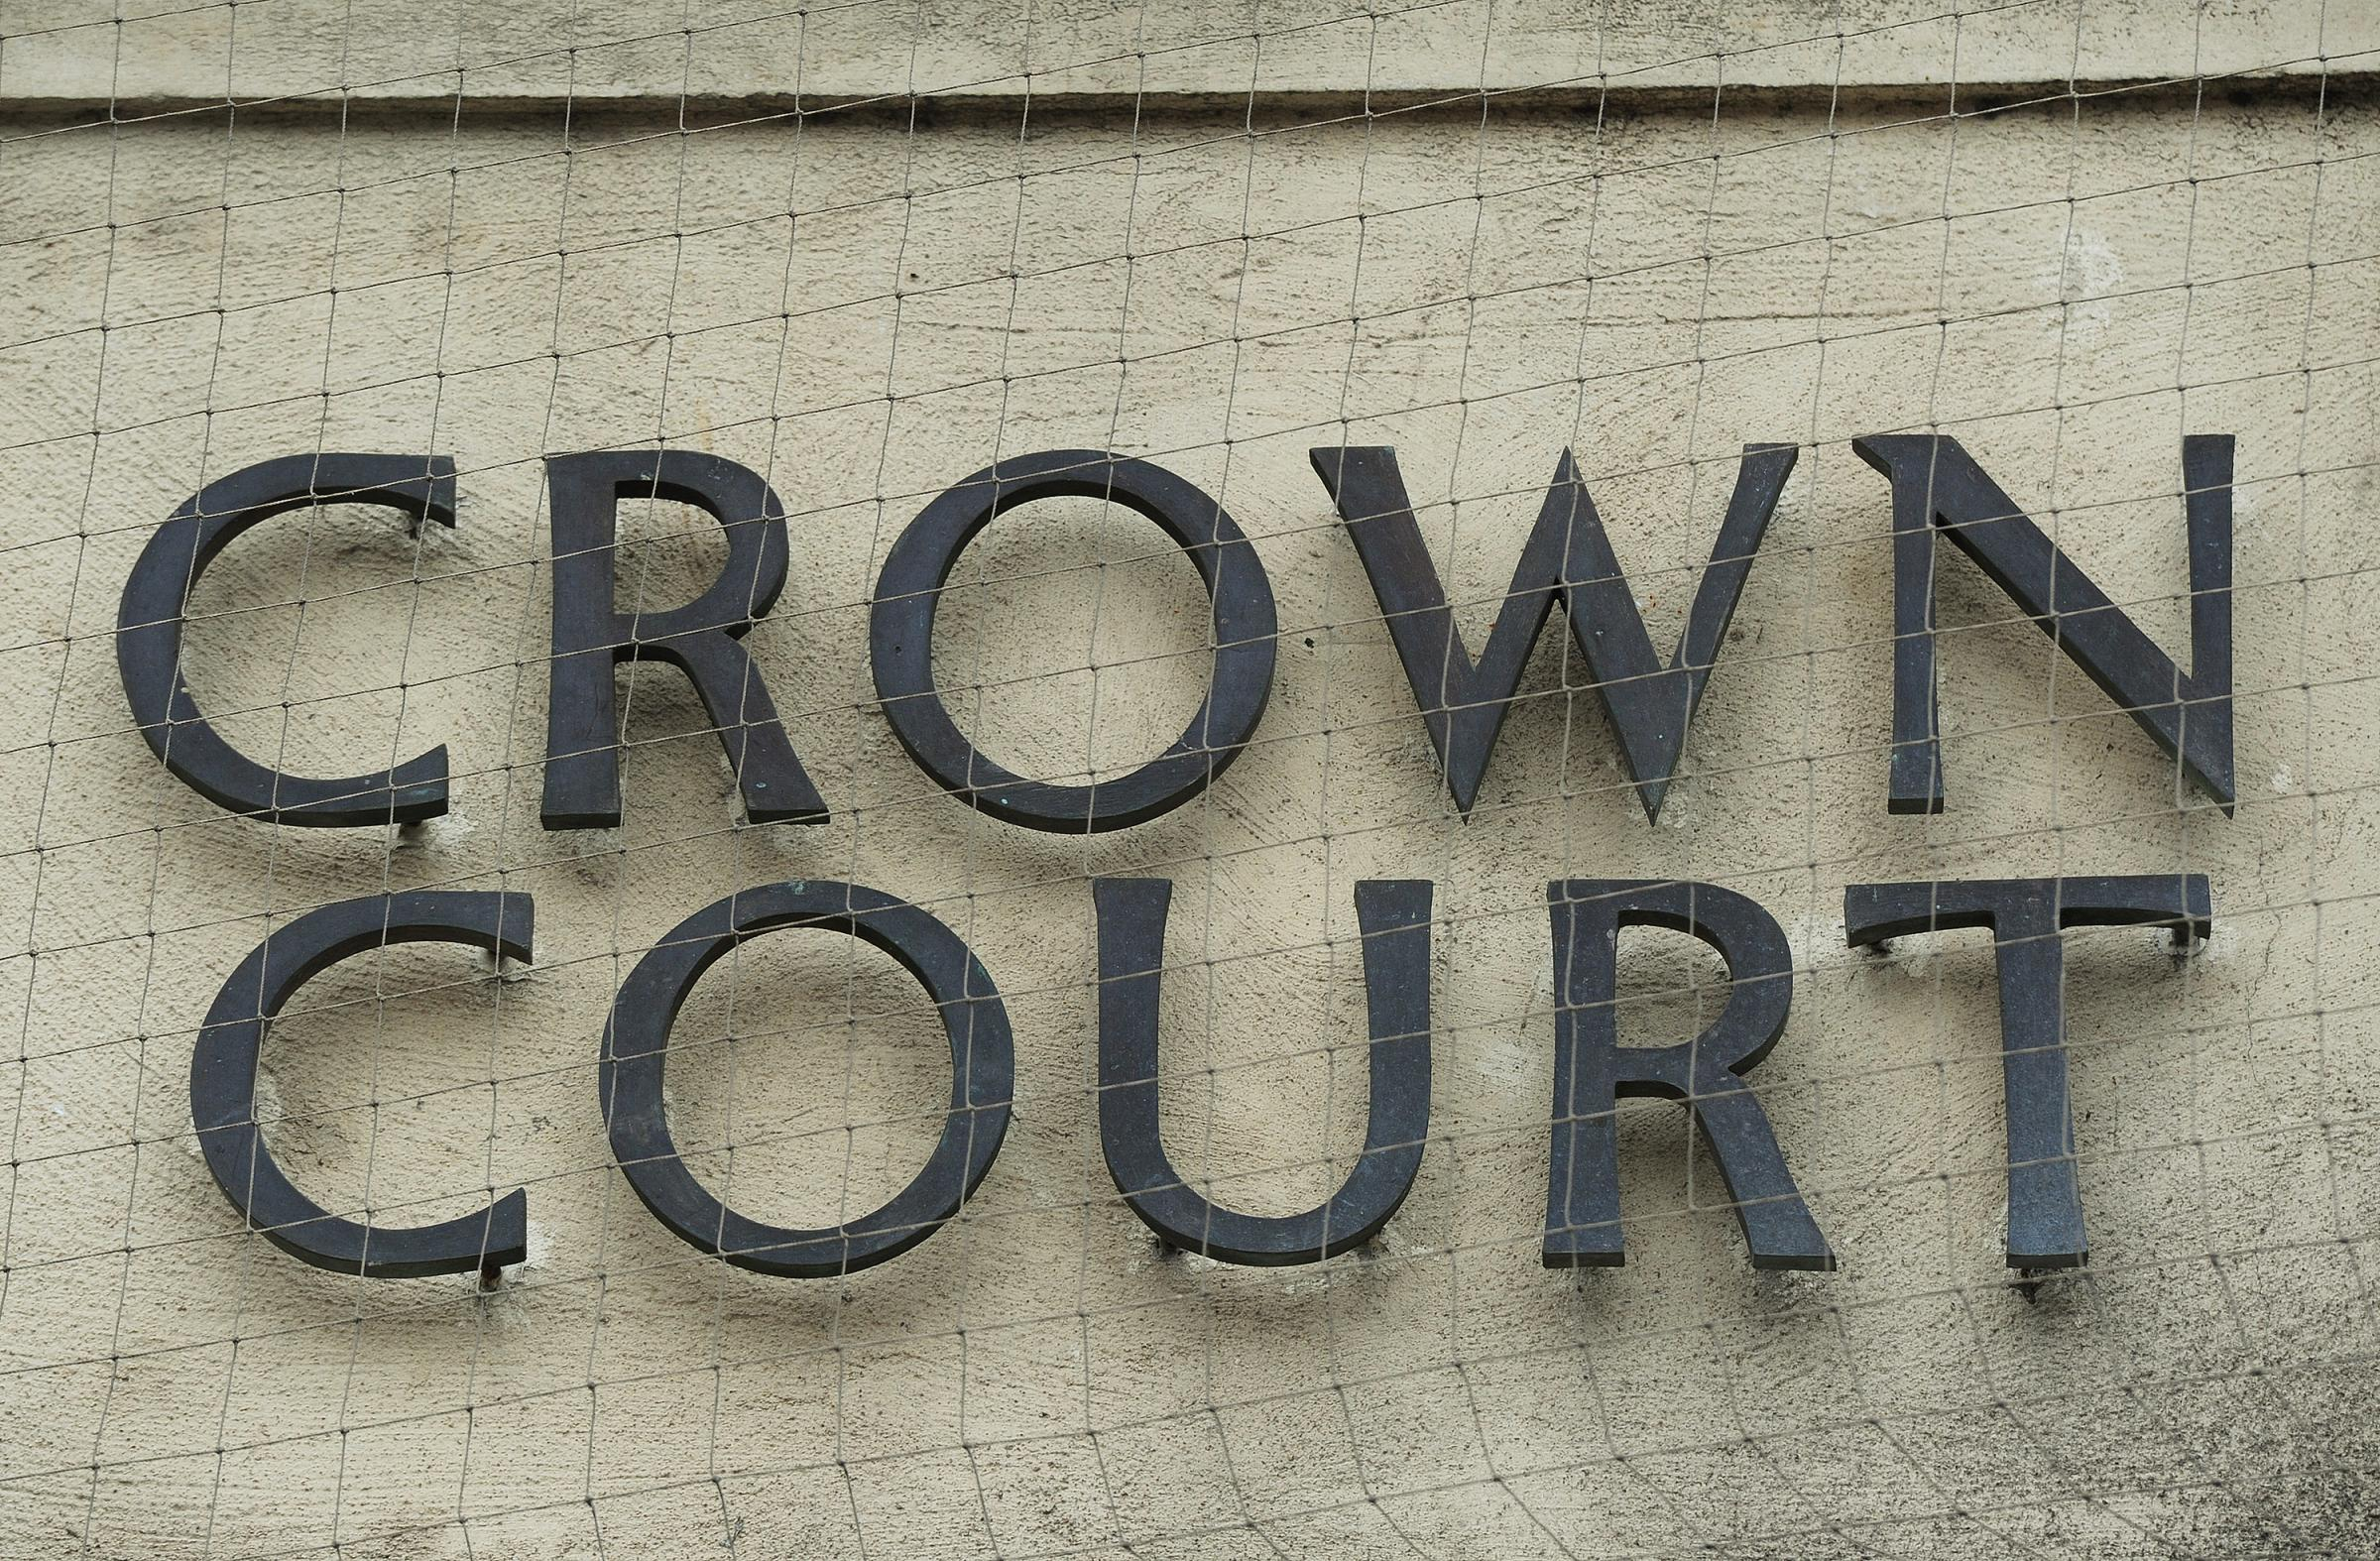 Jealous ex who harassed woman to retrieve his stereo is spared jail